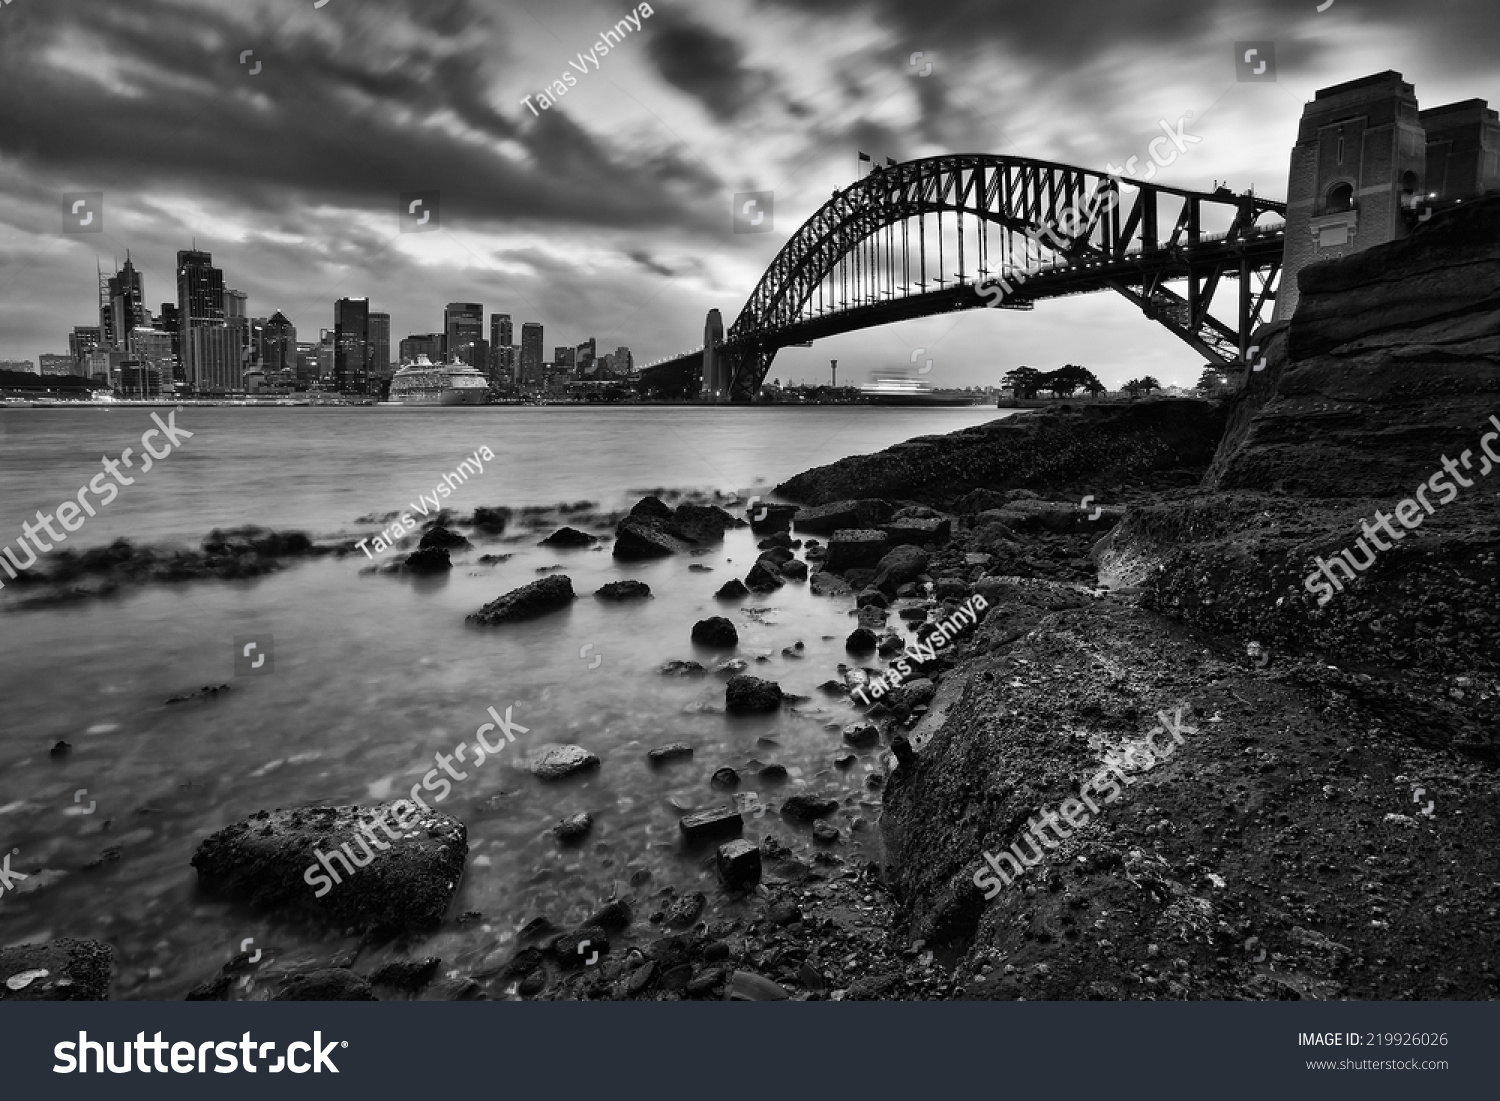 Australia sydney city landmarks harbor bridge stock photo australia sydney city landmarks harbor bridge and cbd at sunset with blurred clouds low tide wet nvjuhfo Gallery